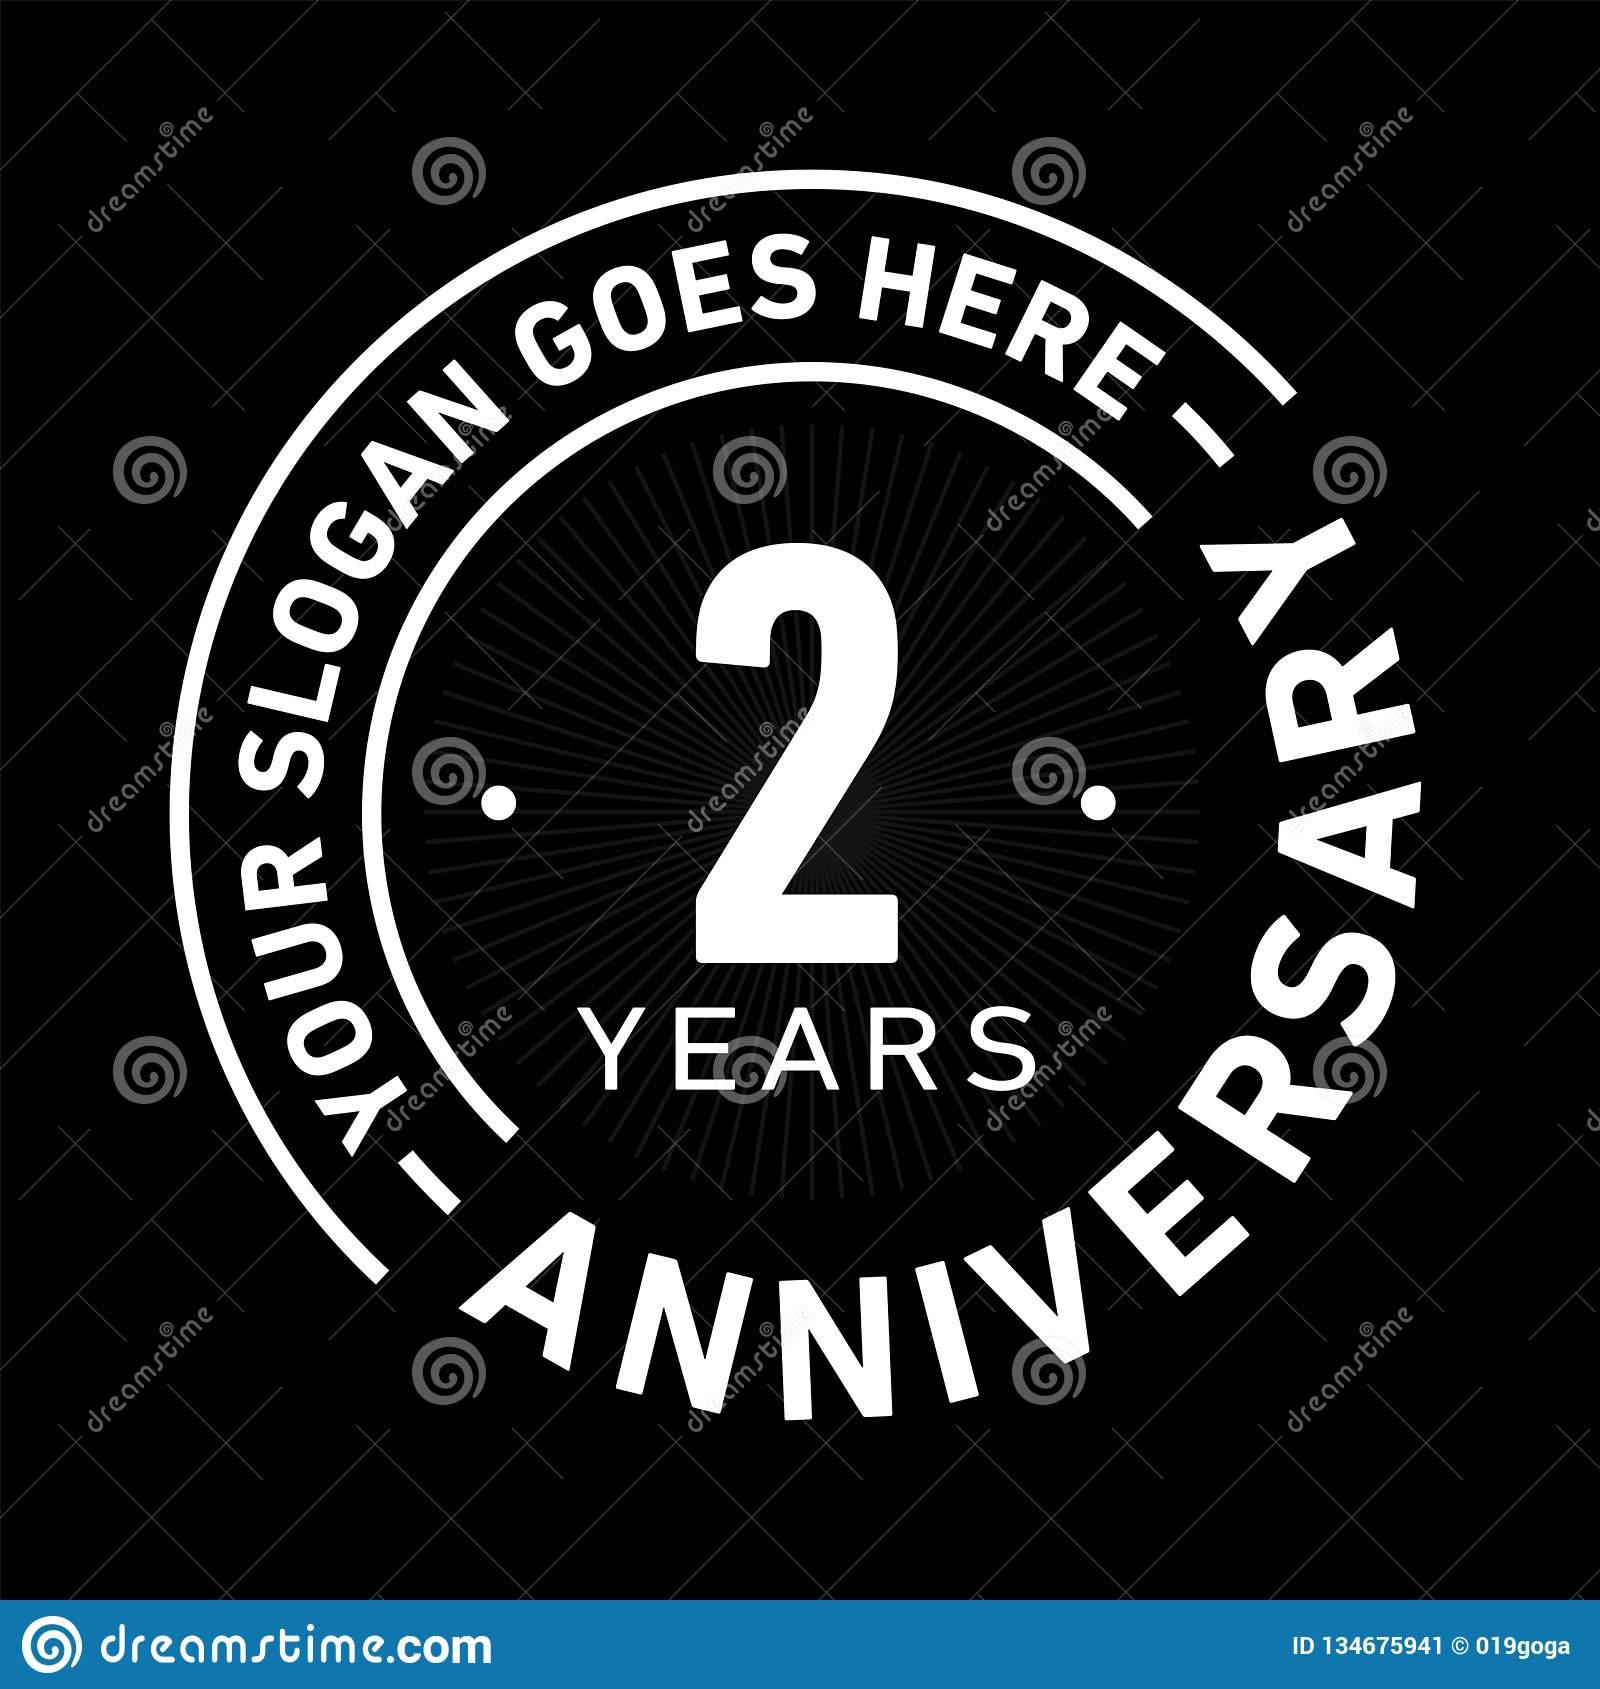 2 Years Anniversary Celebration Design Template Anniversary Vector And Illustration Two Year Logo Stock Vector Illustration Of Icon Logo 134675941